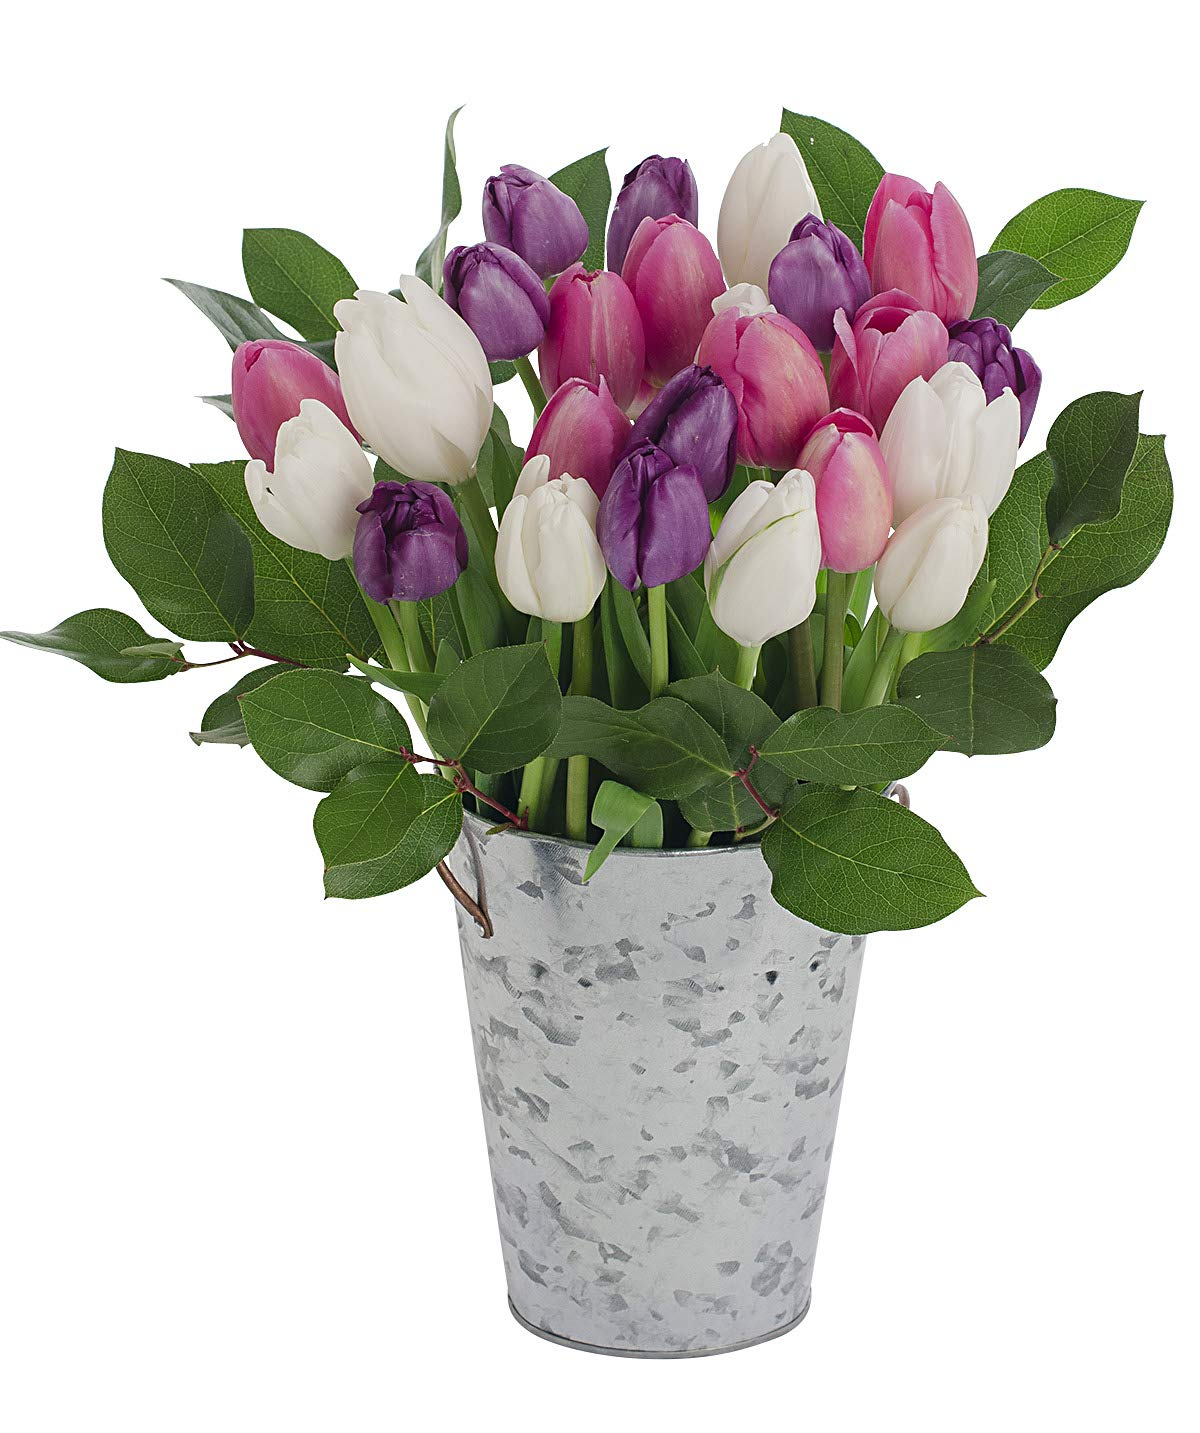 Stargazer Barn Big Flirt Bouquet 2 Dozen Assorted Pink White & Purple Tulips with French Bucket Style Vase by Stargazer Barn (Image #1)